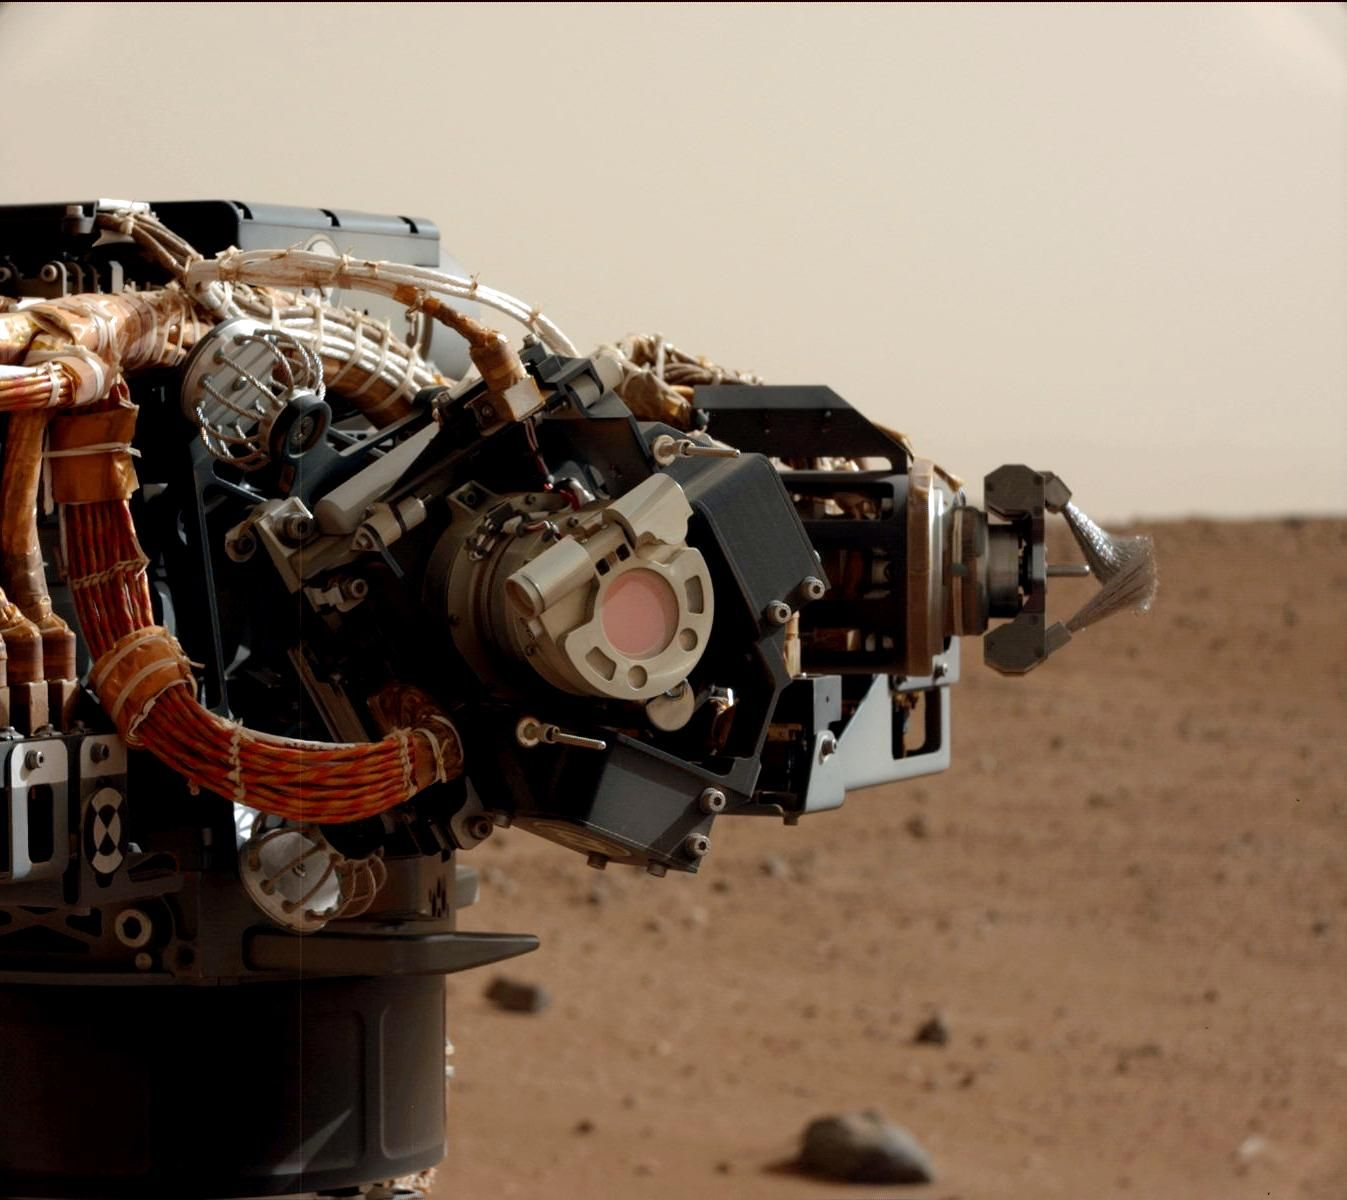 The left eye of the Mast Camera (Mastcam) on NASA's Mars rover Curiosity took this image of the camera on the rover's arm, the Mars Hand Lens Imager (MAHLI), during the 30th Martian day, or sol, of the rover's mission on Mars (Sept. 5, 2012). MAHLI is one of the tools on a turret at the end of the rover's robotic arm. When this image was taken, the arm had raised the turret to about the same height as the camera on the mast. The Mastcam's left eye has a 34-millimeter focal length lens.